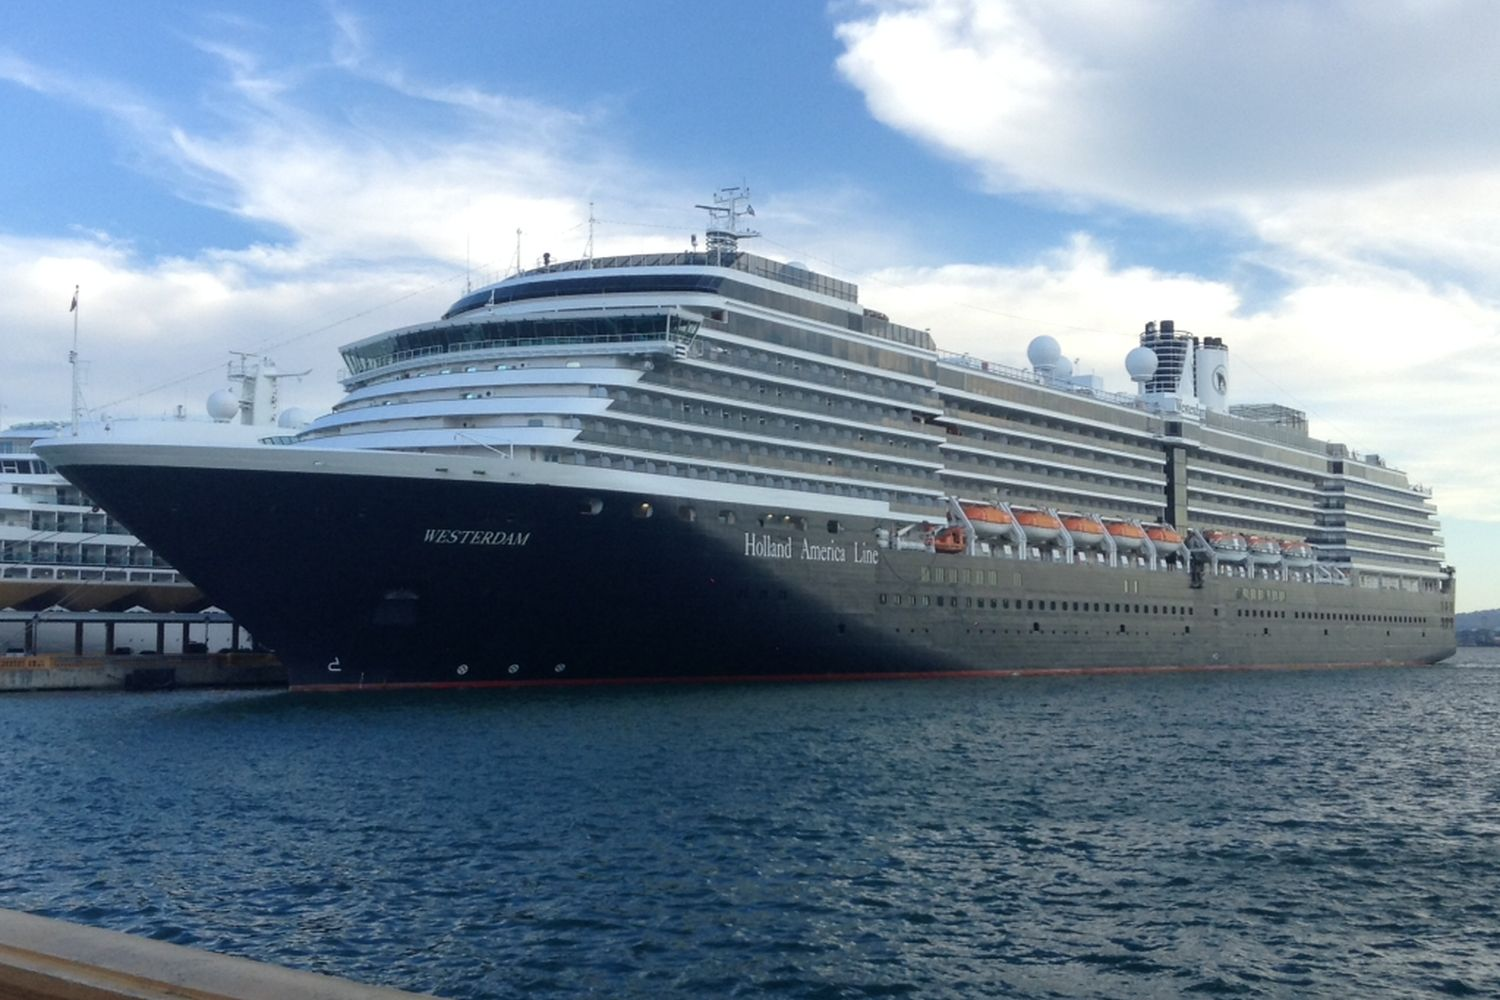 The 'Westerdam' docks in San Juan, Puerto Rico, on Nov 24, 2015. (Photo by Master0Garfield distributed under the Creative Commons Attribution-Share Alike 4.0 International licence.)